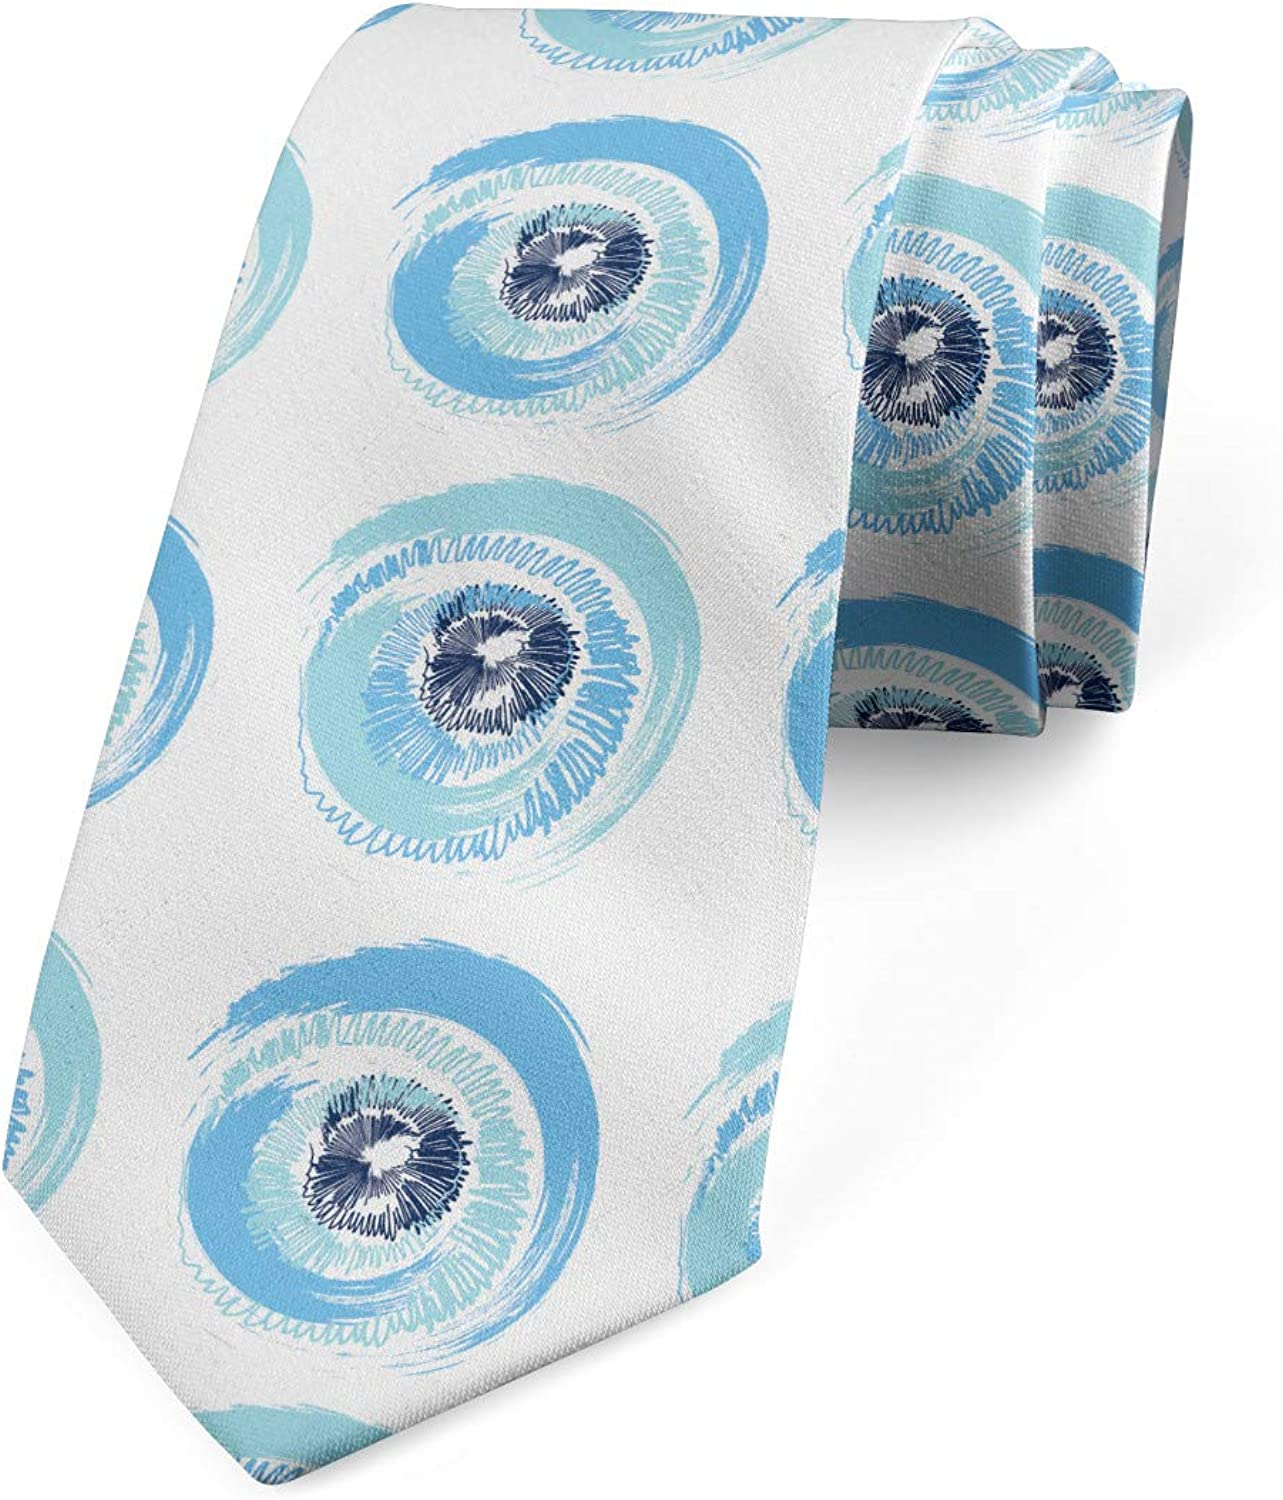 Tampa Mall Save money Ambesonne Multicolor Modern Tie Men's